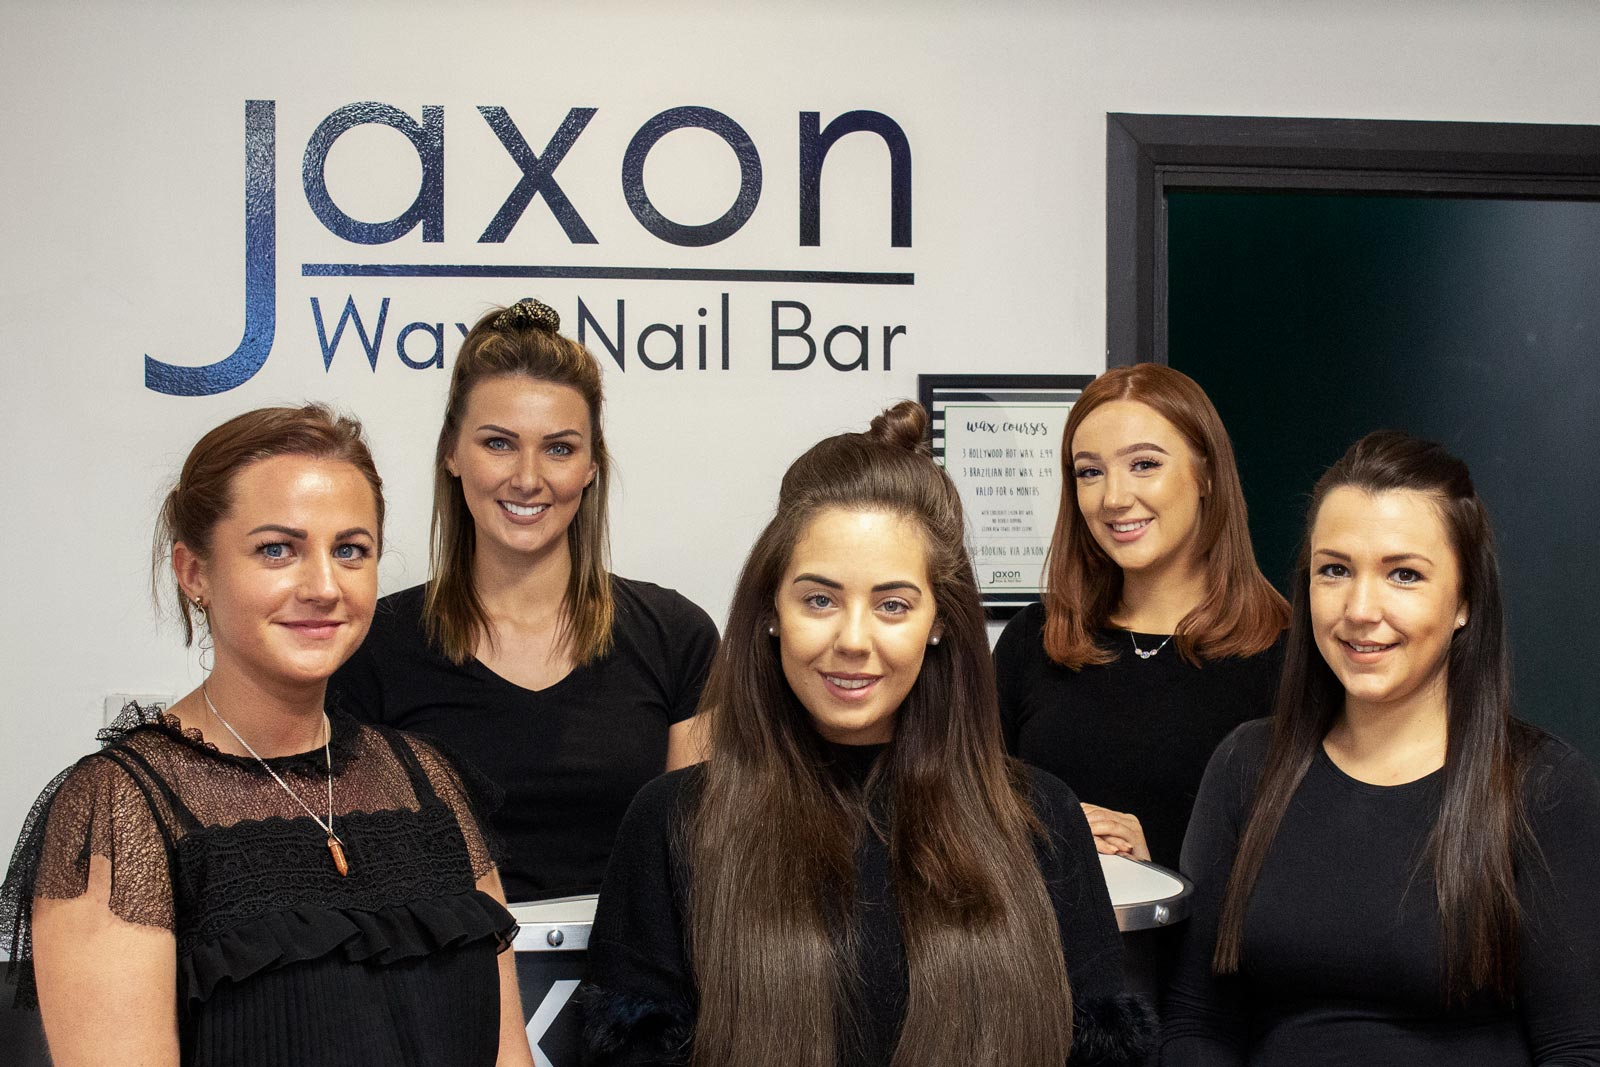 Jaxon London - Wax and Nail Bar